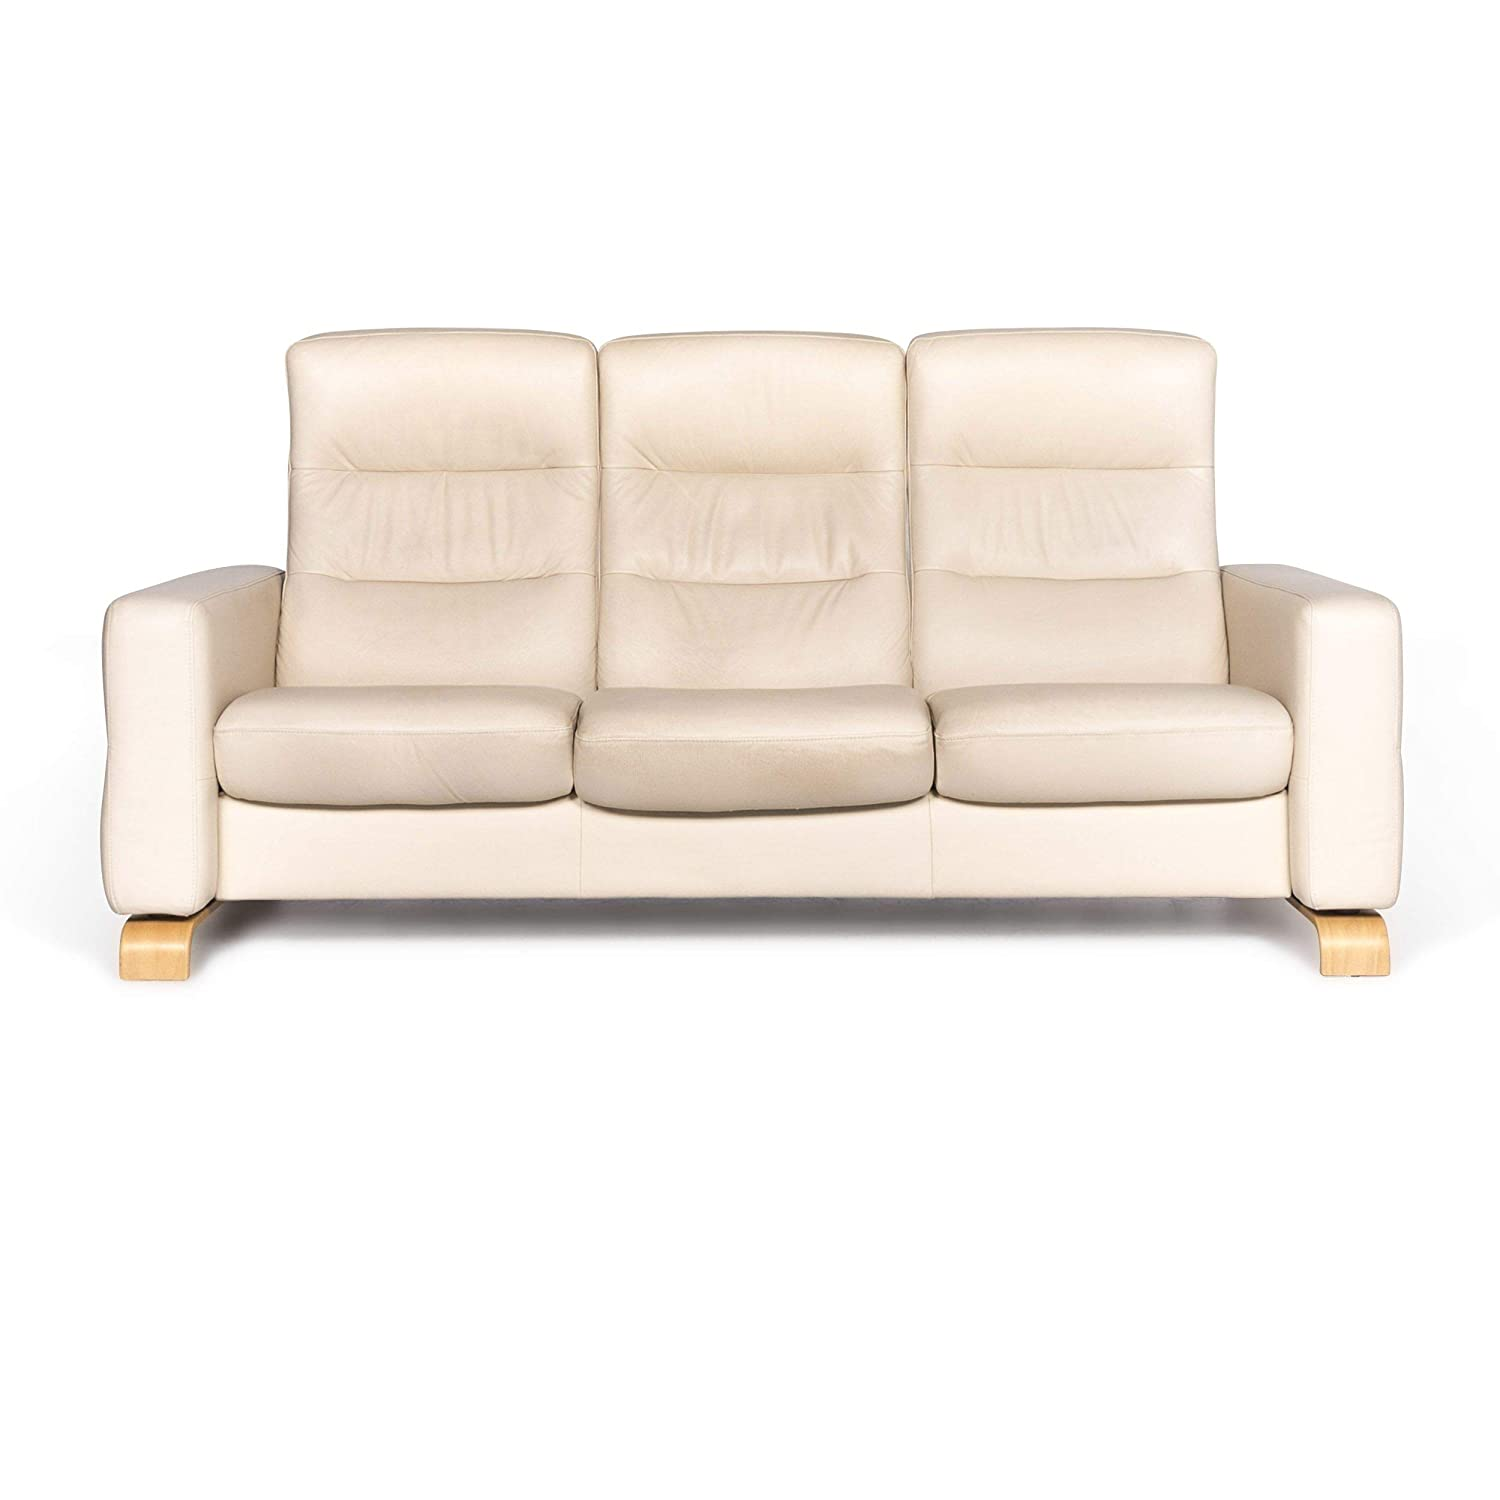 Stressless Wave Designer Leather Sofa Beige Three-Seater ...